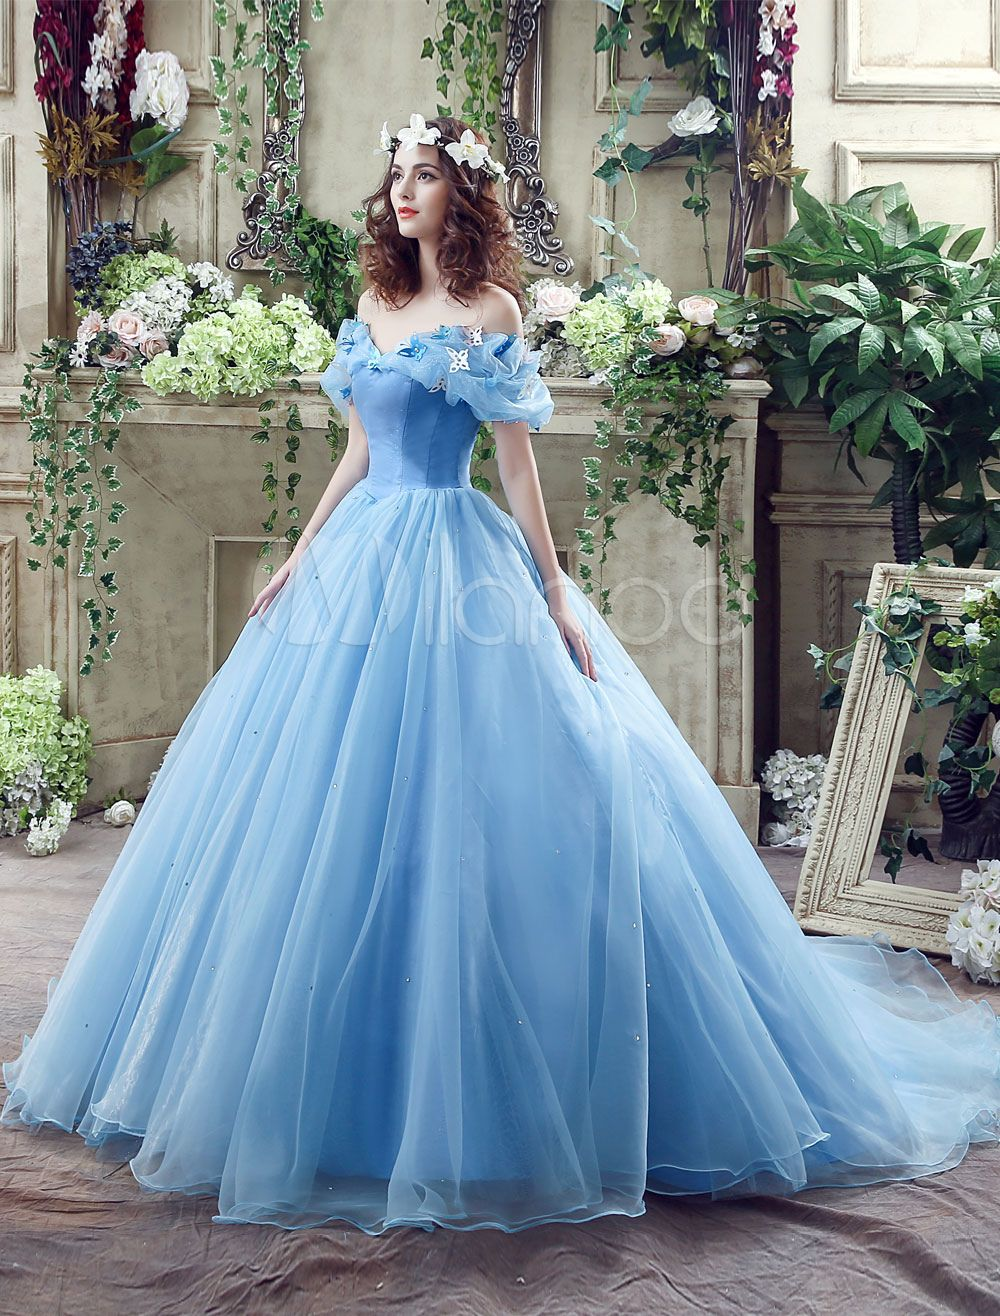 6373b9c3cb2 Cinderella Dress Blue Organza Tulle Off the Shoulder Ball Gown Dress with  Chapel…